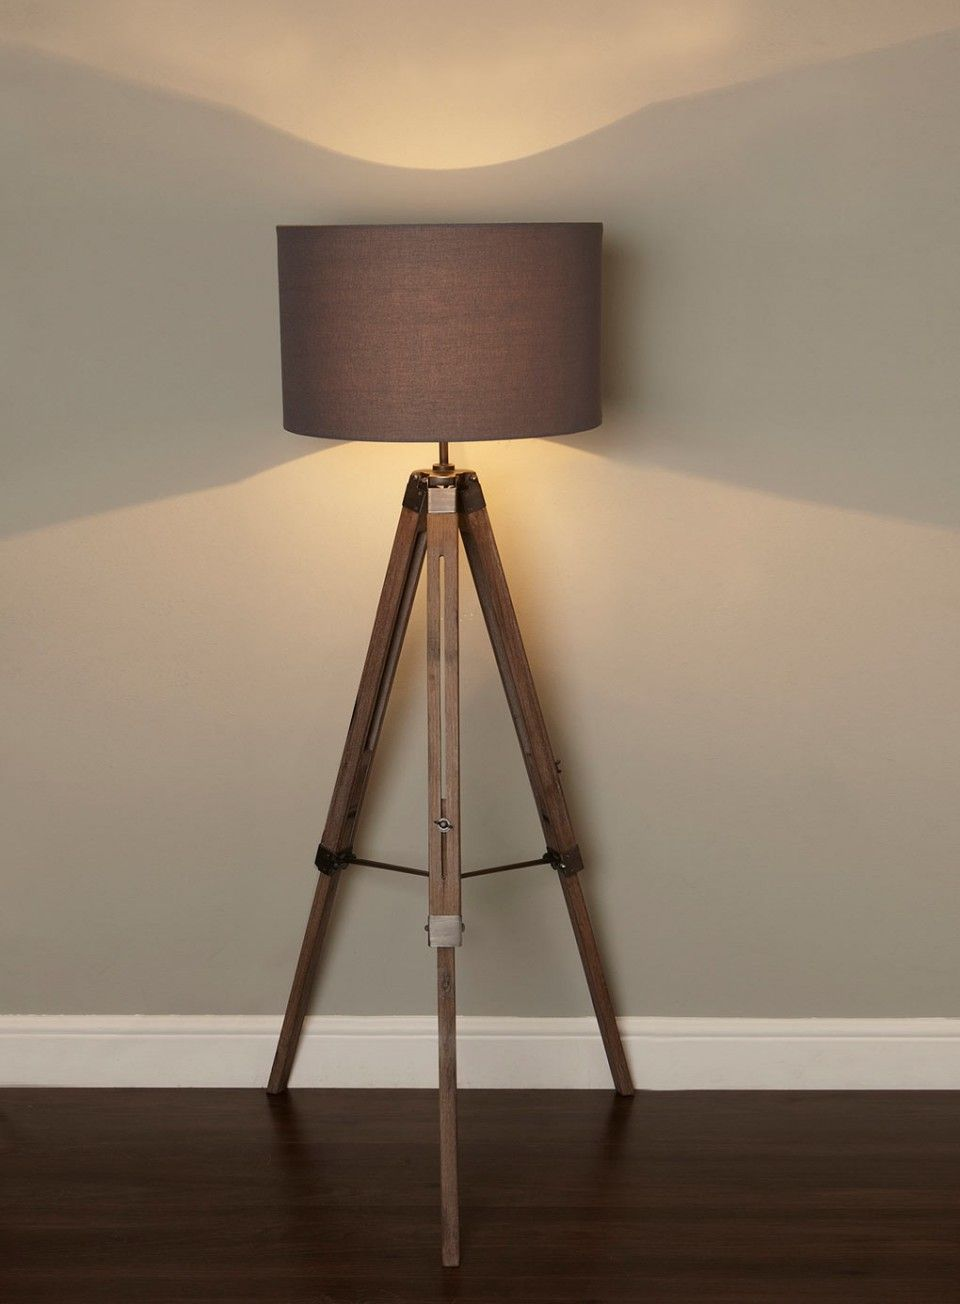 Captivating Harley Tripod Floor Lamp With Wooden Tripod And Linen Drum Lamp Shade In Dark Grey ...